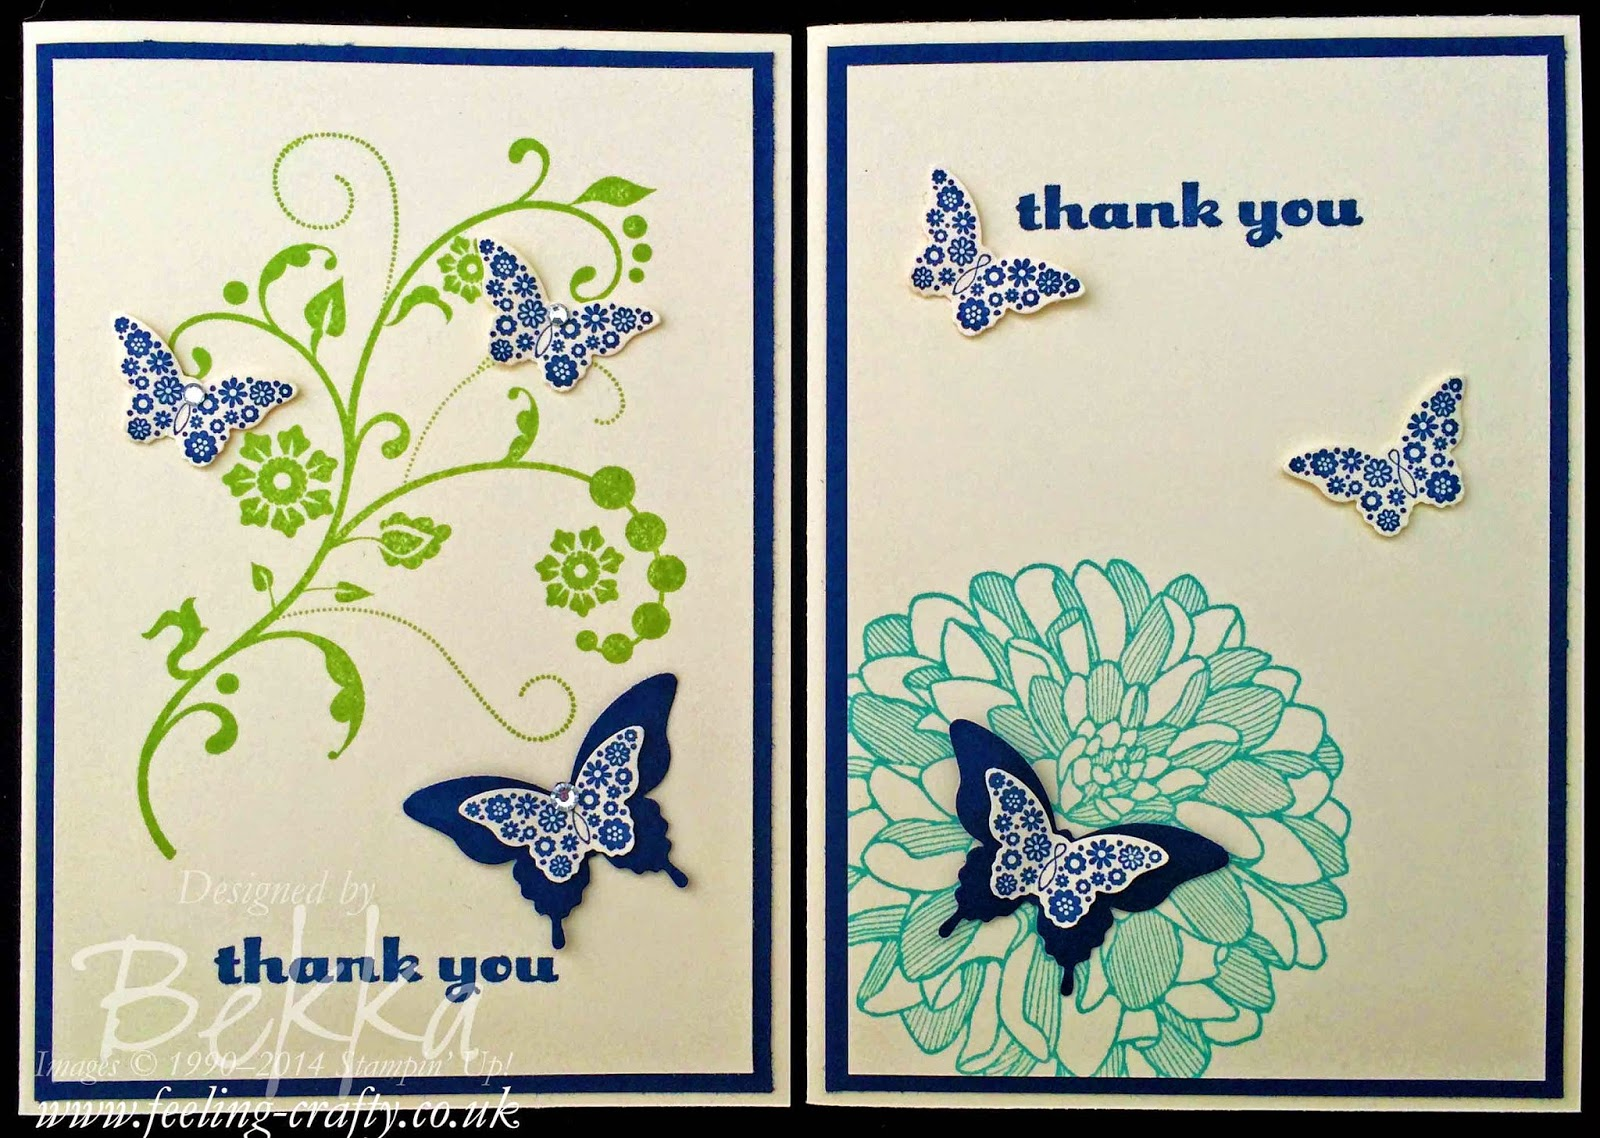 Thank you cards made at a Hen Party - check it out here